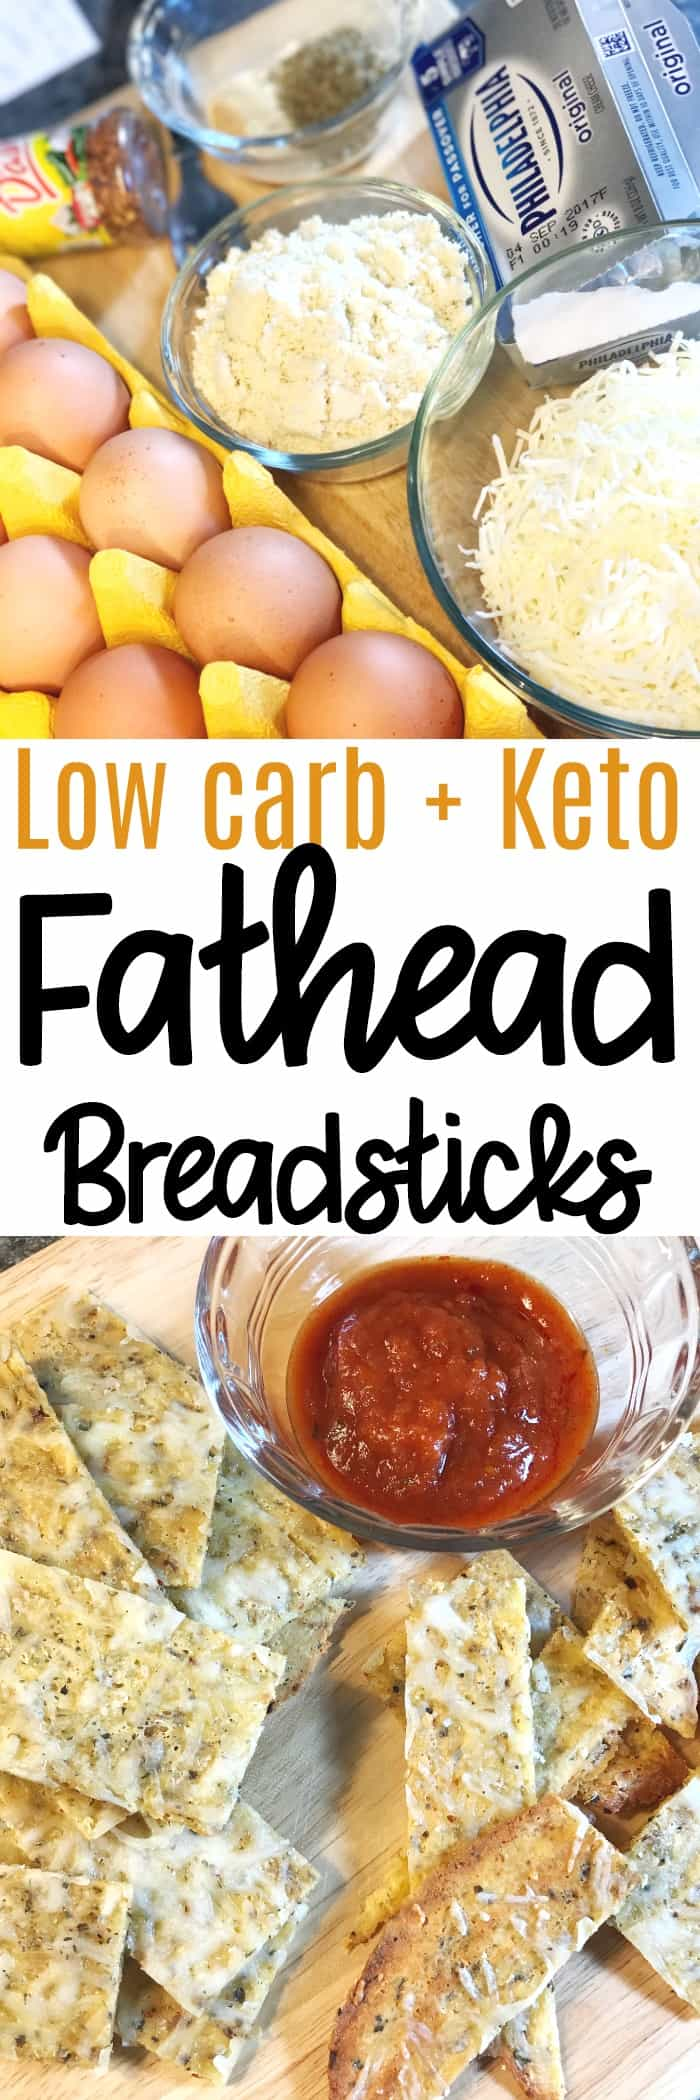 Low Carb and Keto Fathead Cheese Sticks